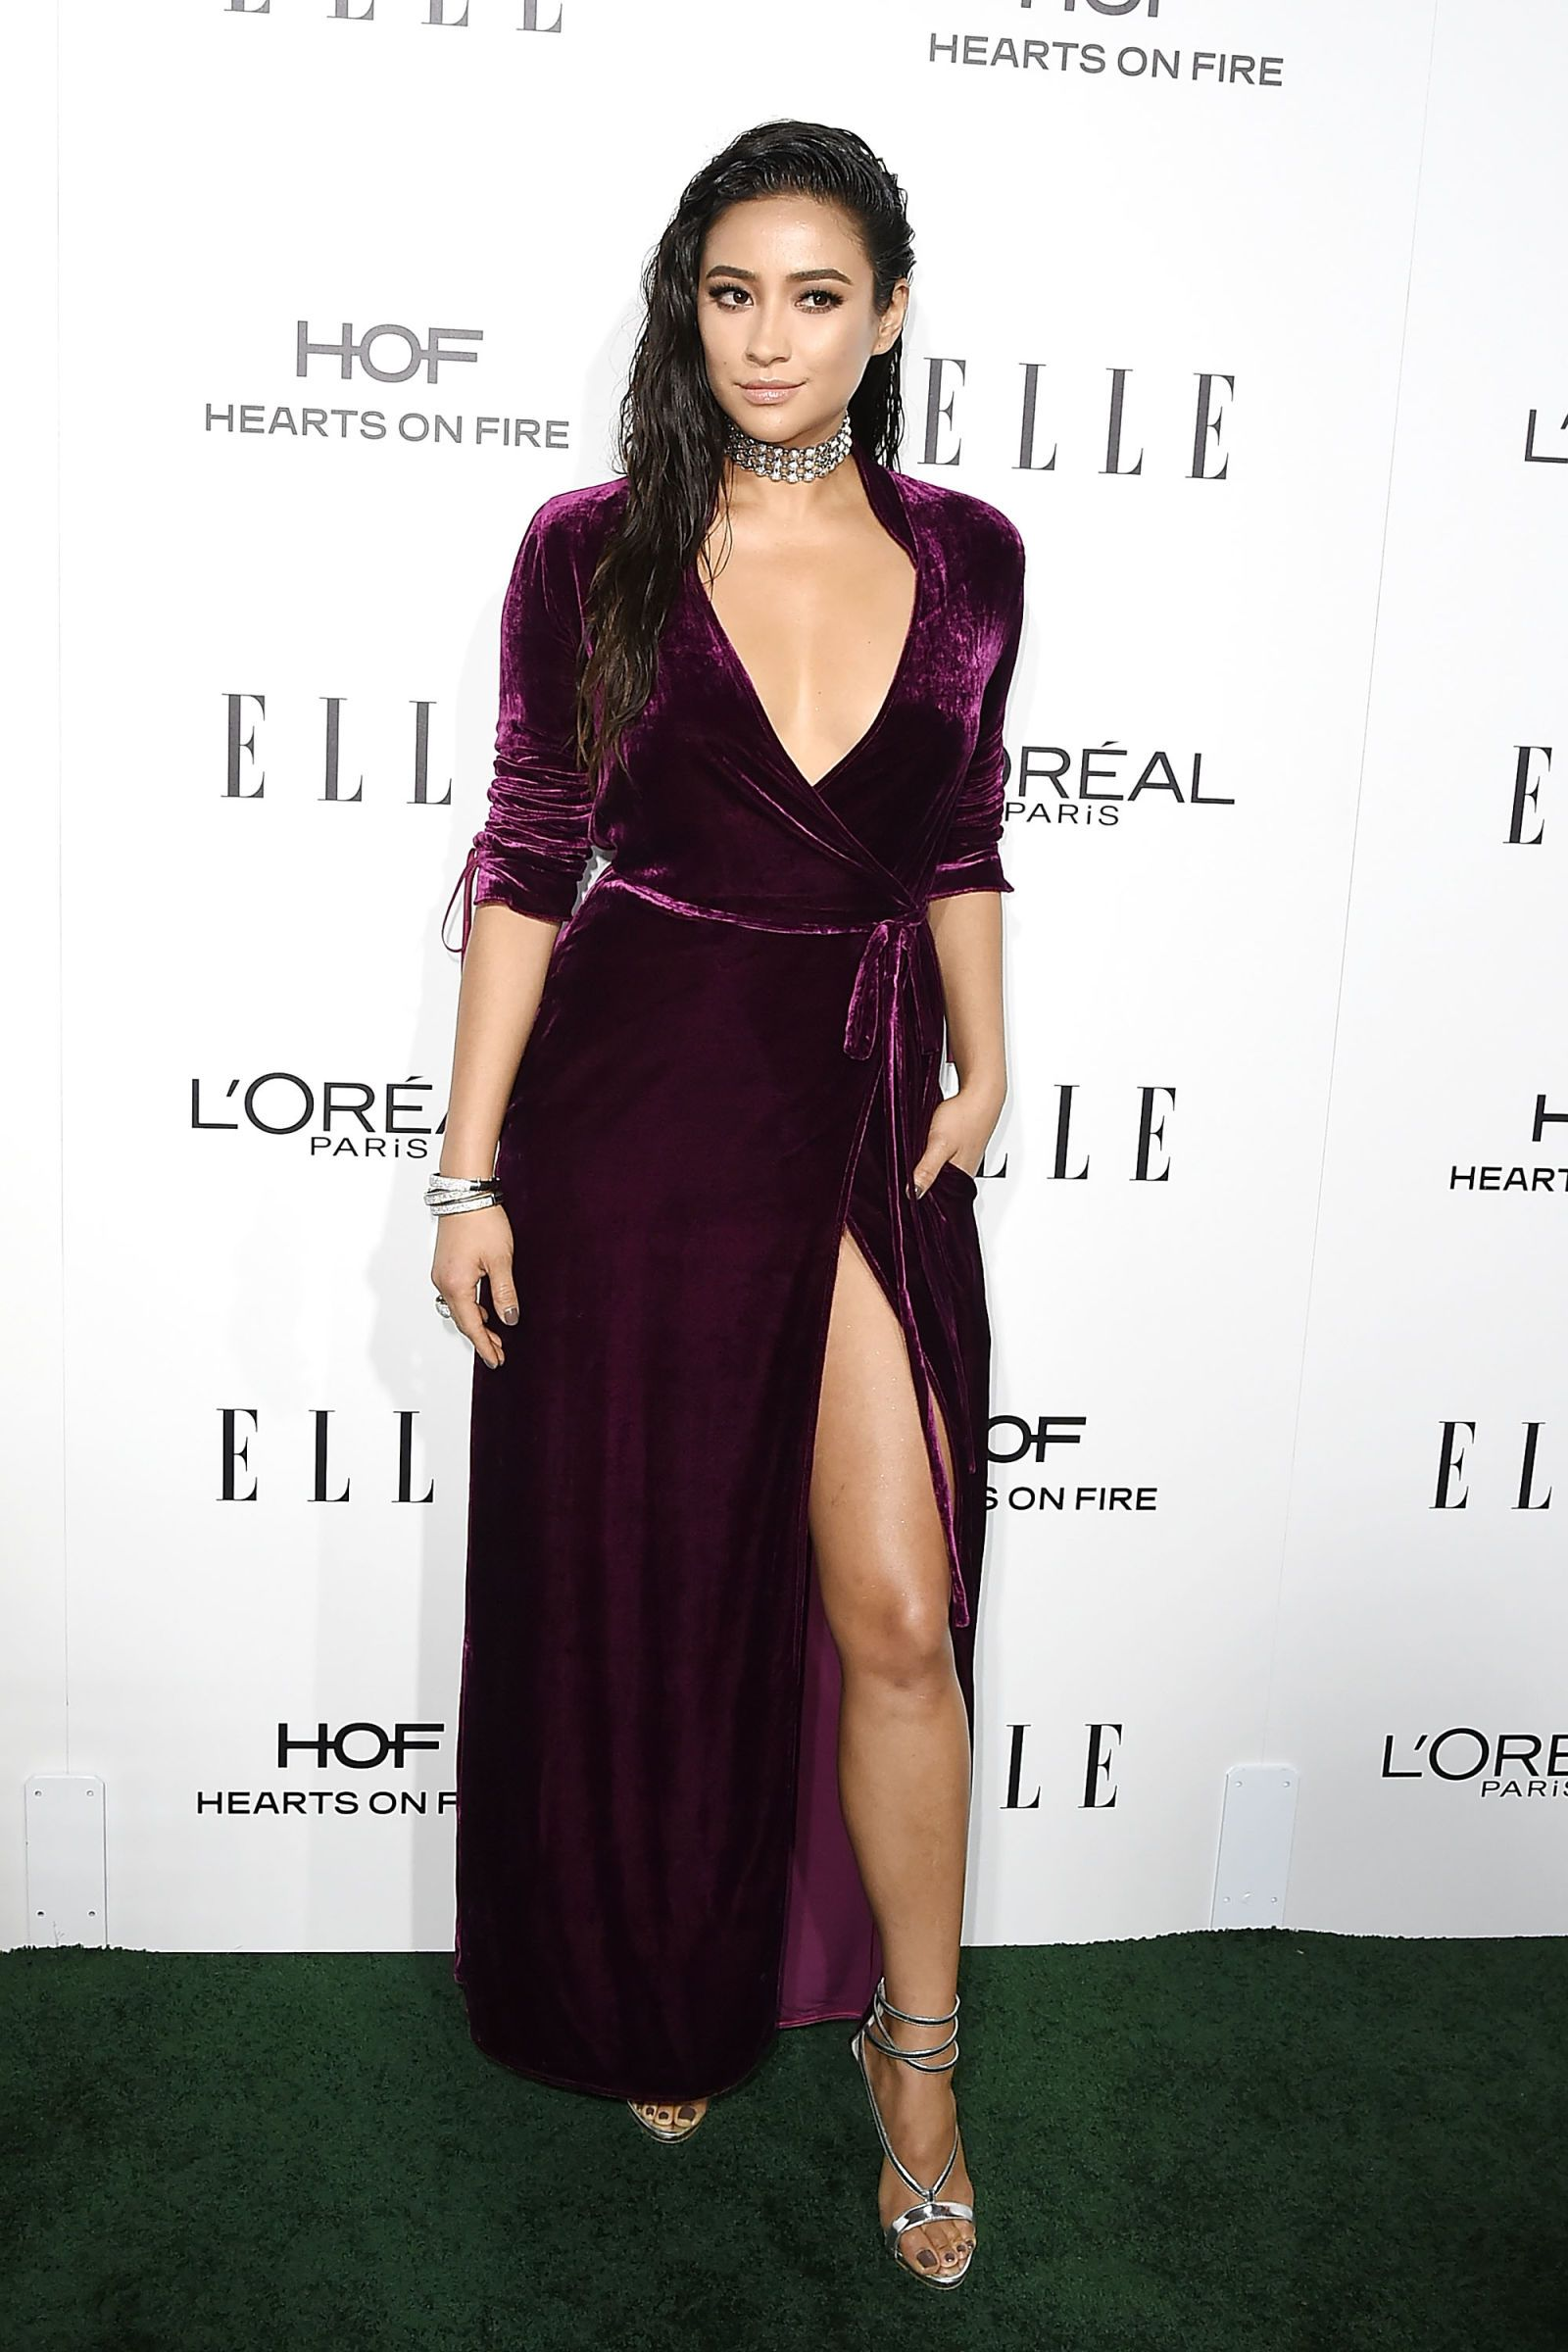 f3fa8c8de8 Shay Mitchell - ELLE.com. Find this Pin and more on The Gown ...